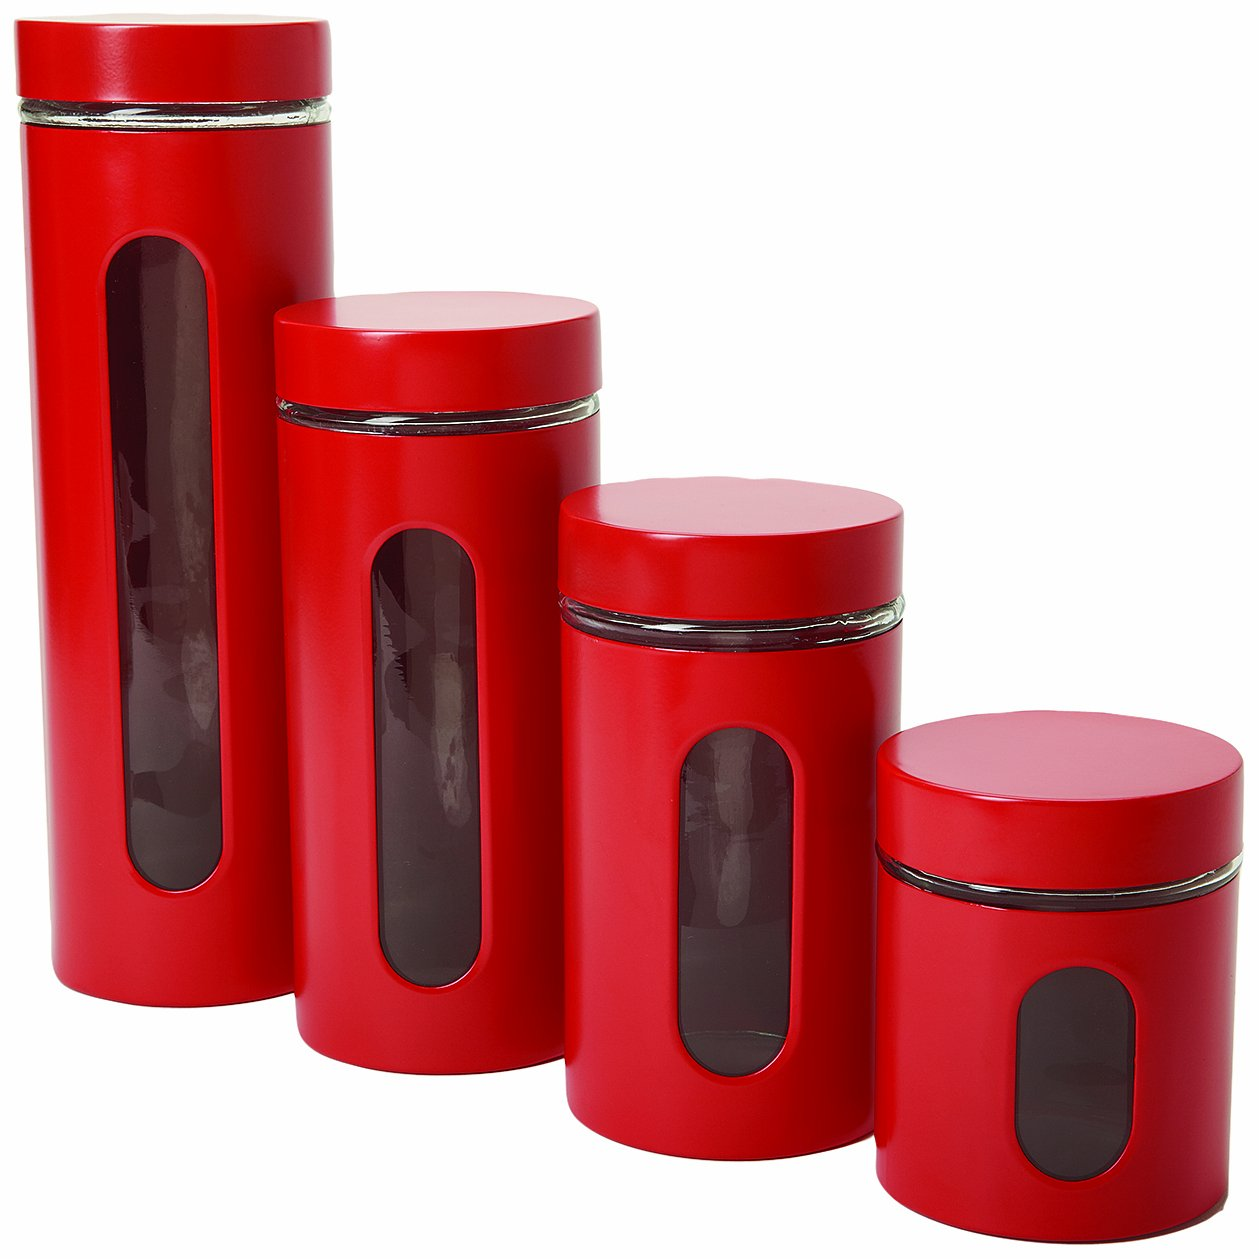 Anchor Hocking Palladian Glass and Stainless Steel Canister Set with Lids, Cherry, 4-Piece Set 97561